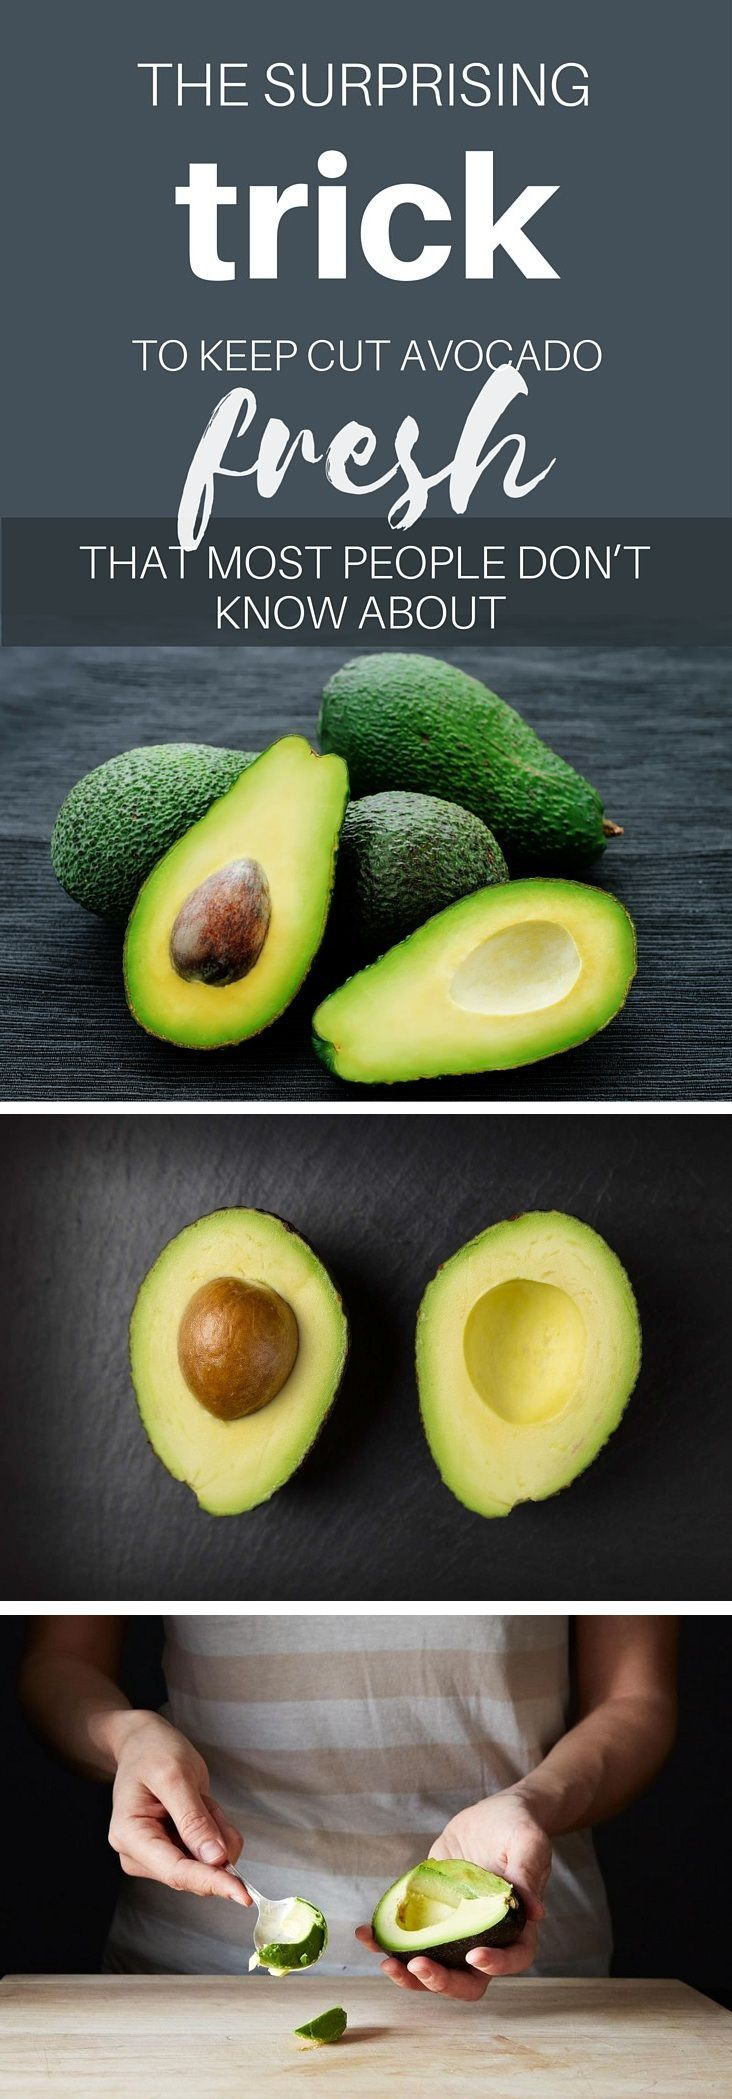 The Surprising Trick to Keep Cut Avocados Fresh That Most People Don't Know About